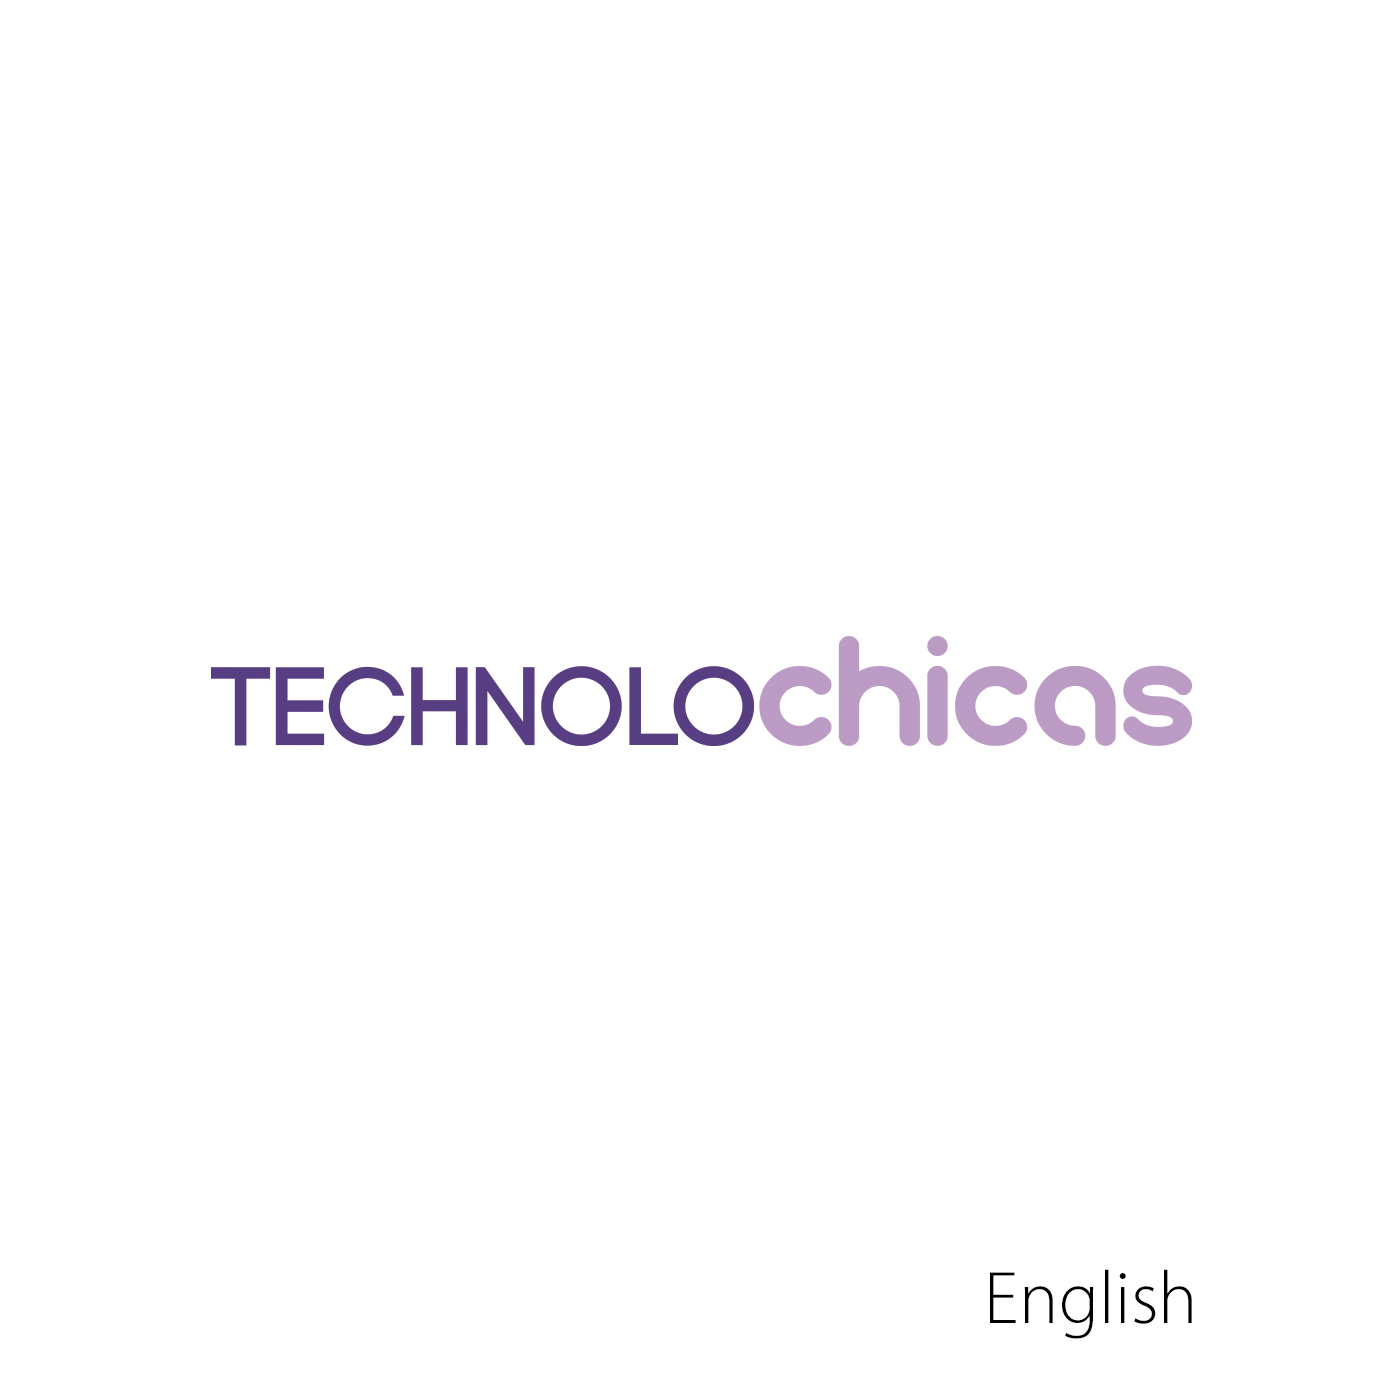 TECHNOLOchicas: young Latinas creating technology (video)